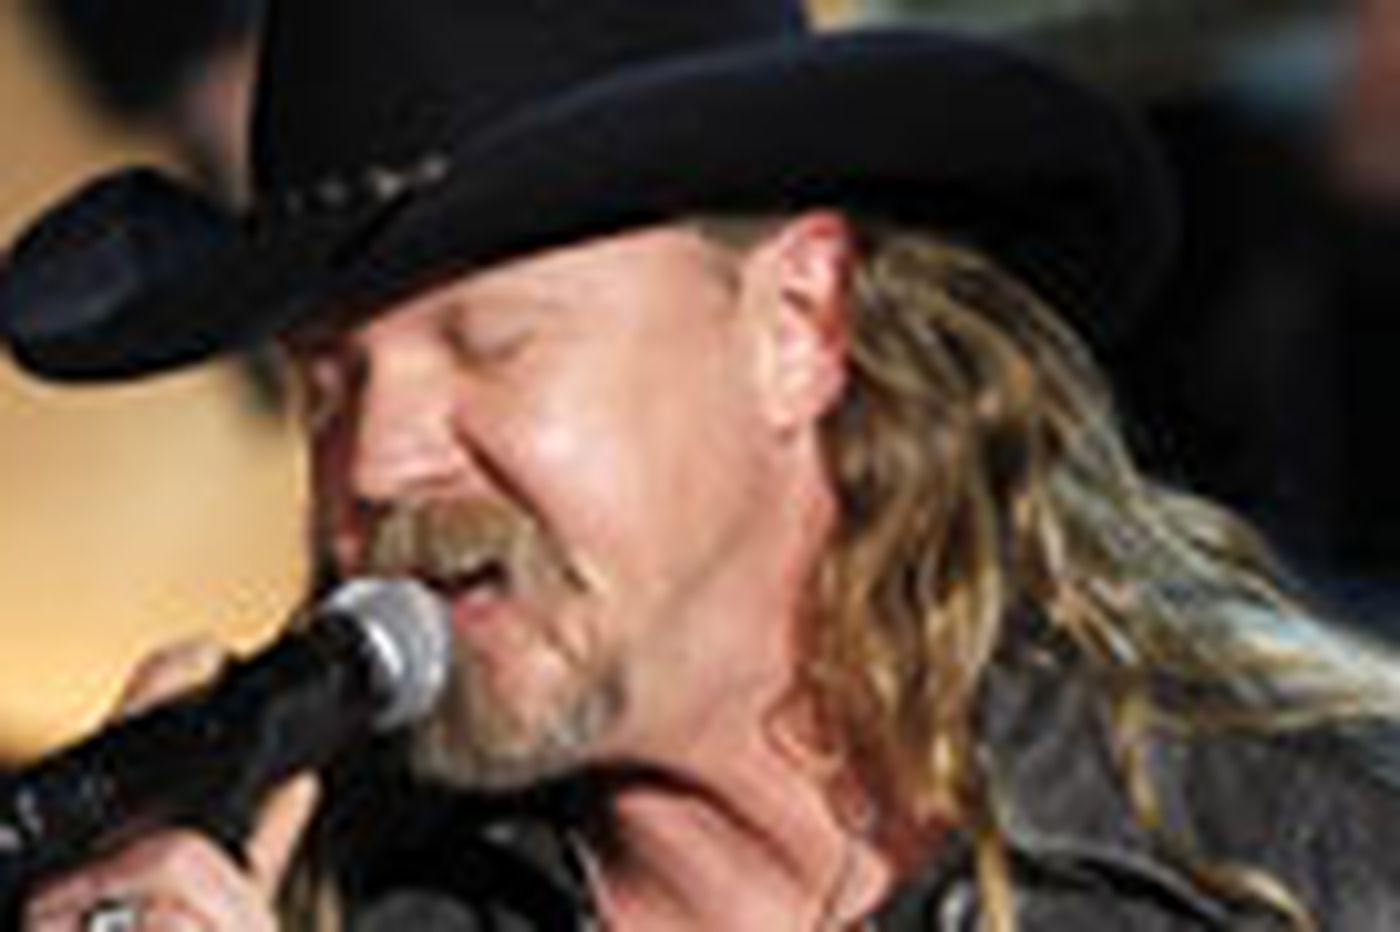 Sideshow: House of country star Trace Adkins burns